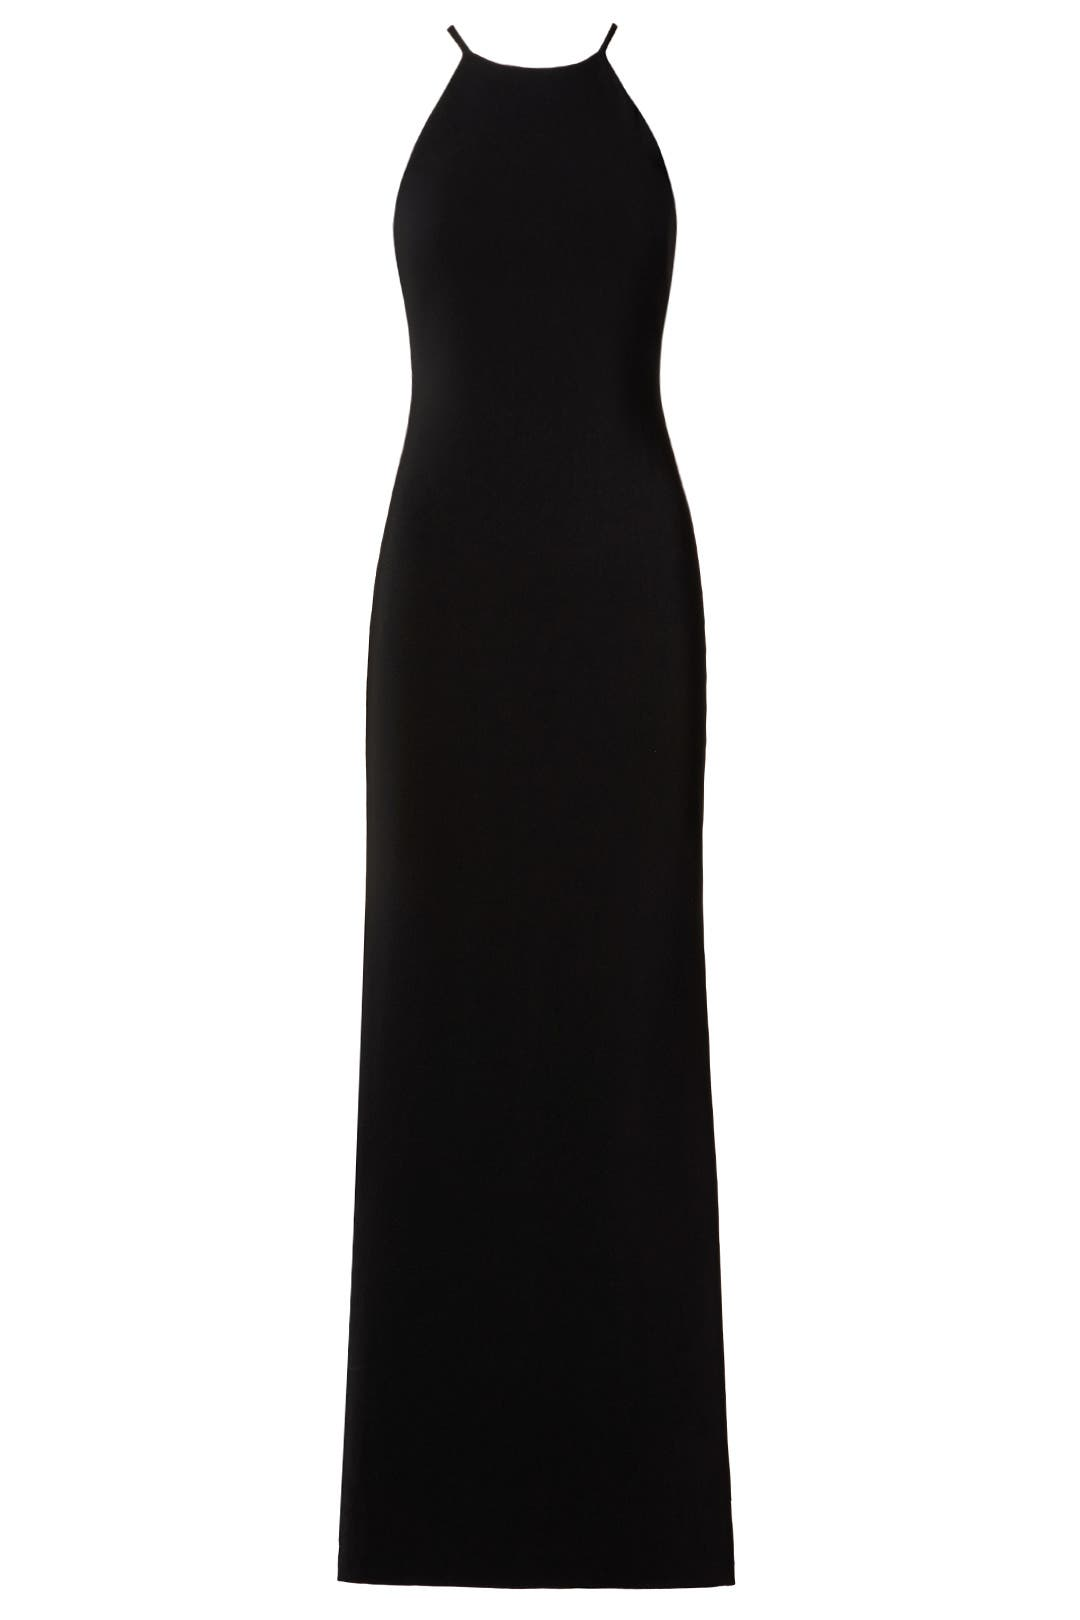 Midnight Gown by Badgley Mischka for $95 - $115 | Rent the Runway